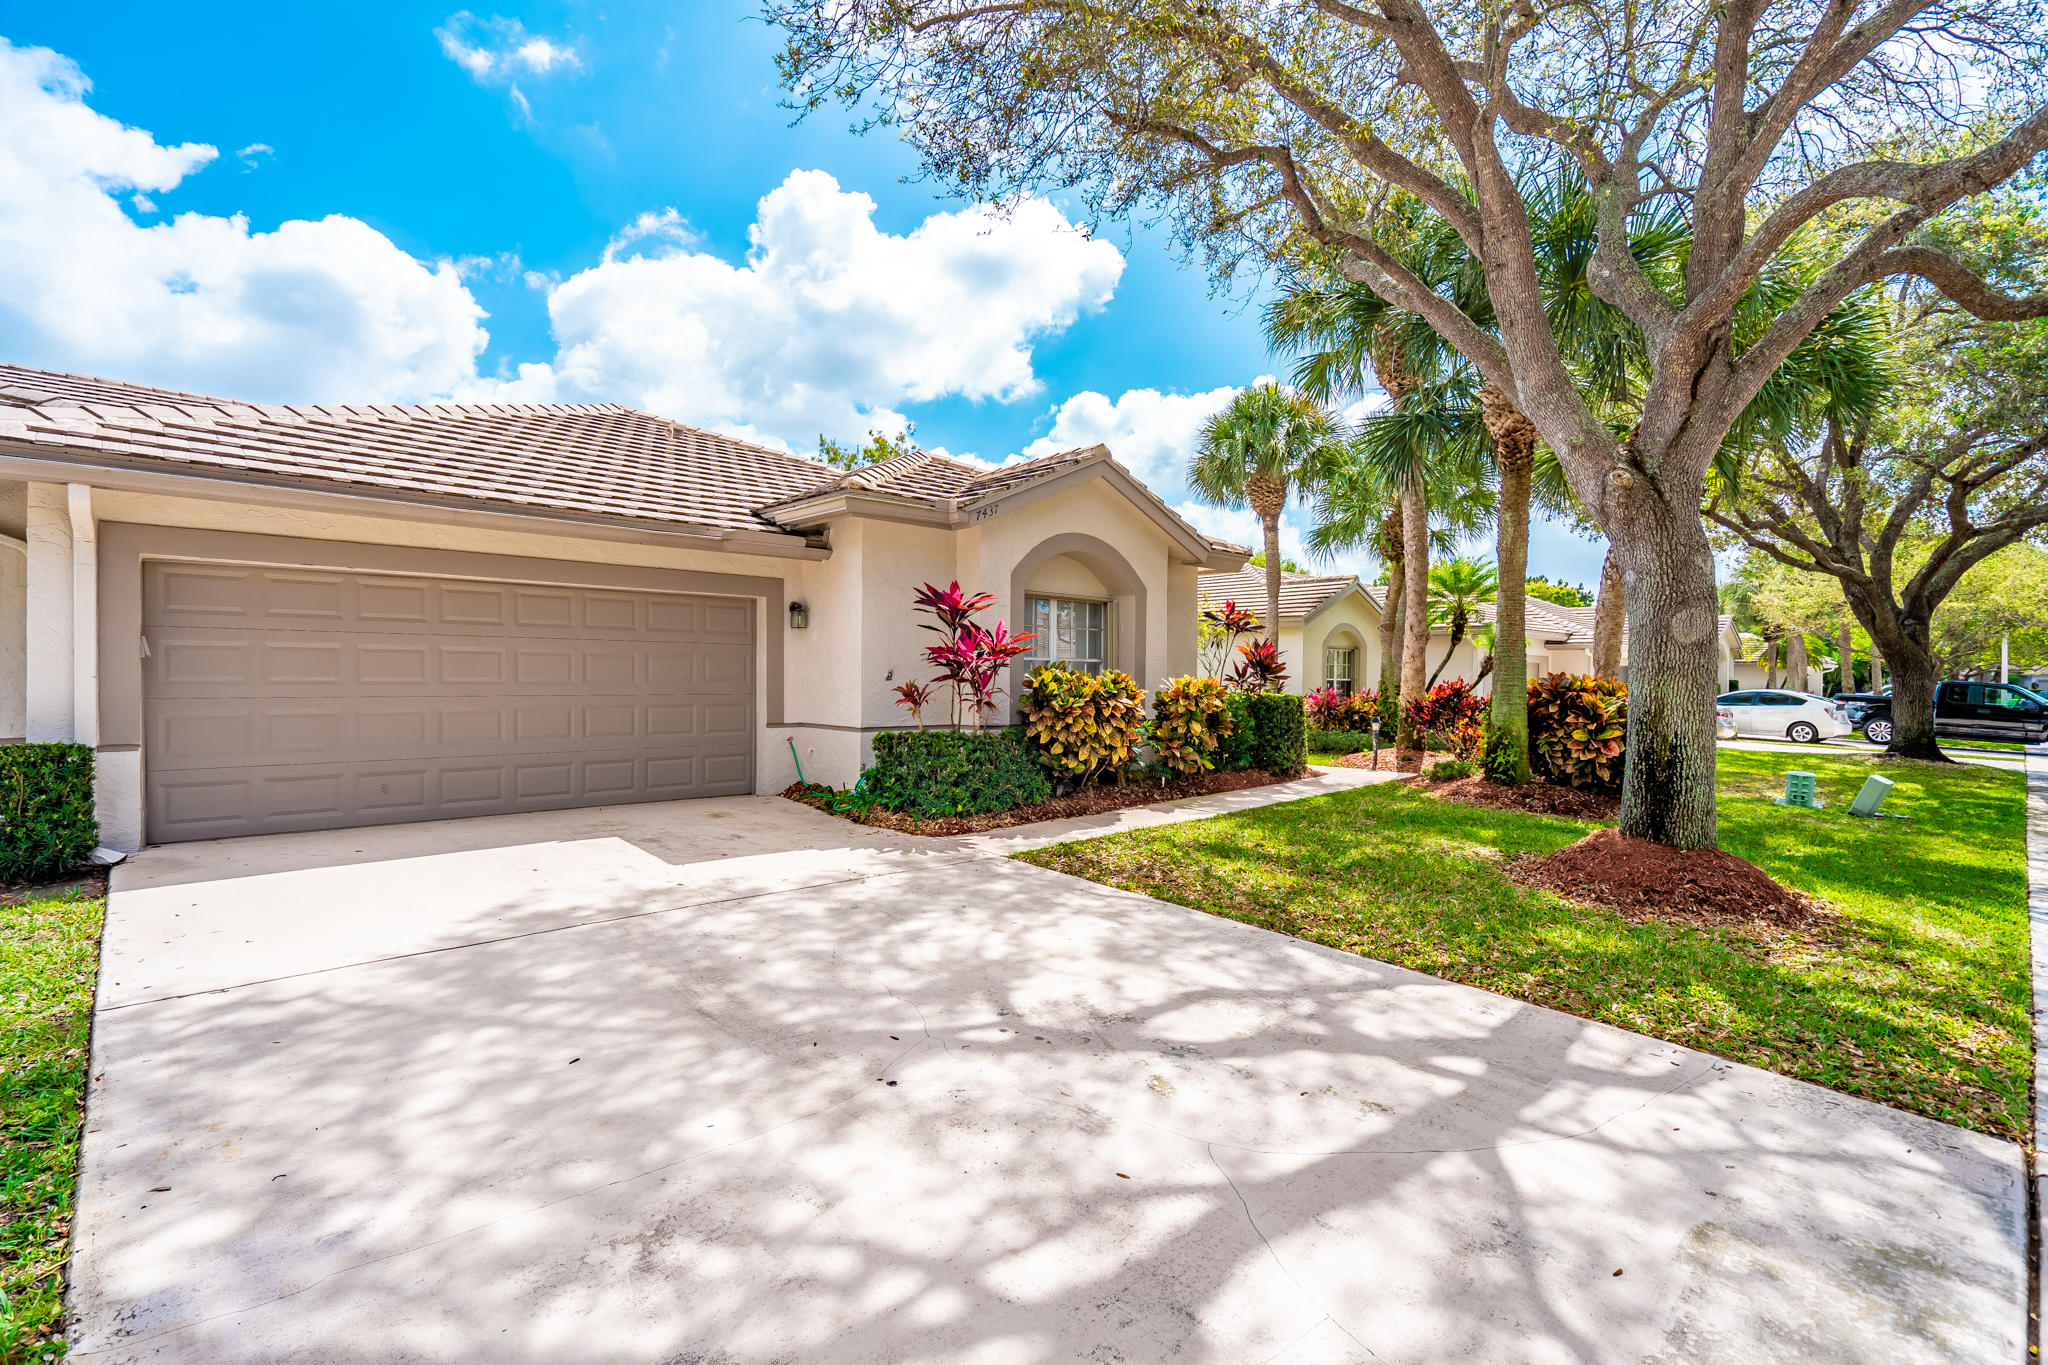 Home for sale in Water's Edge Lake Worth Florida